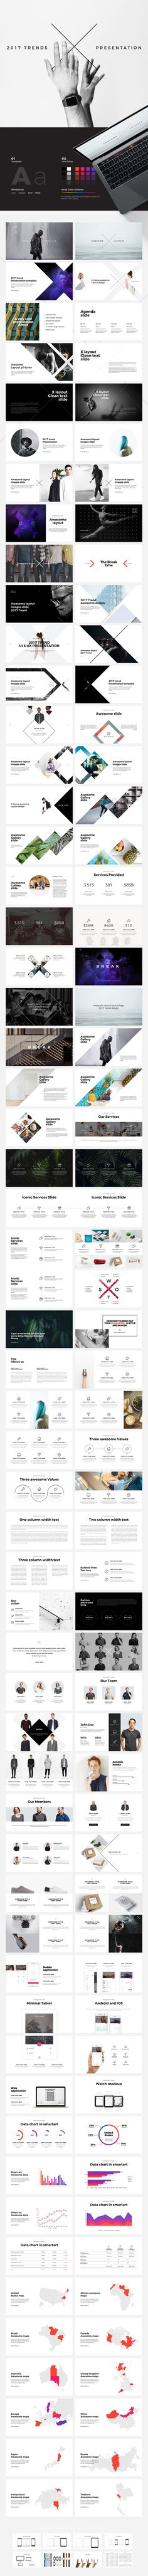 X Powerpoint Template by Dublin_Design on @creativemarket